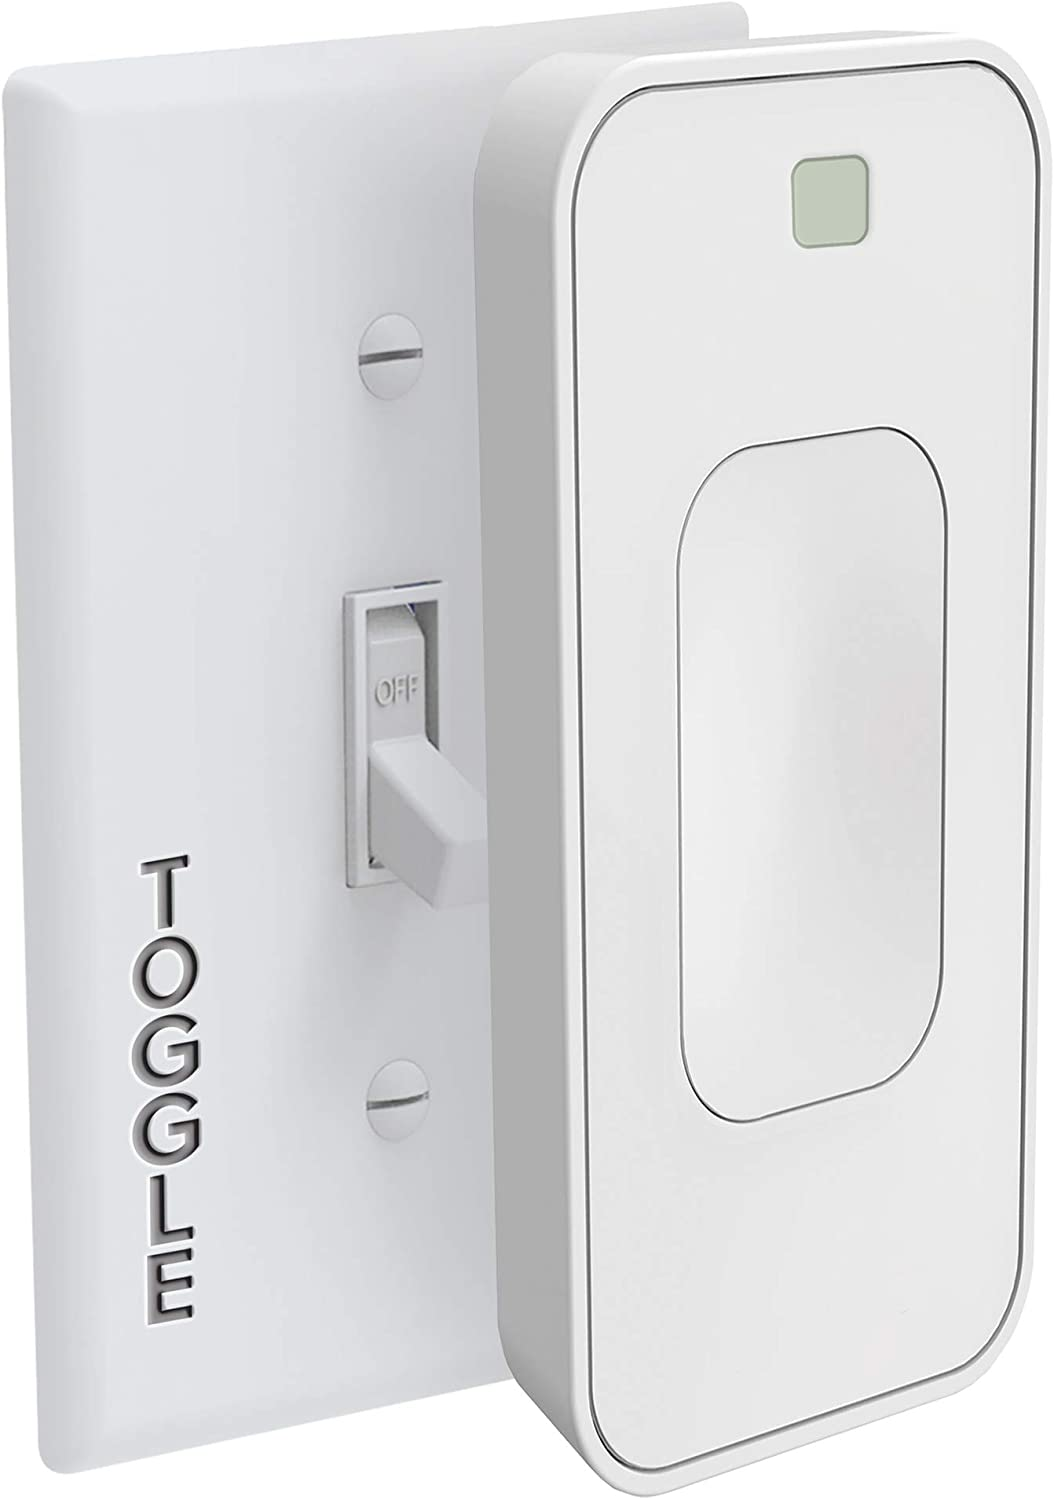 Switchmate Slim for Toggle Light Switches by SimplySmart Home, Timer, Automation, DIY, Snap On, No Tools/Wiring, Smart Lighting, Smart Home, Bluetooth, Google Assistant, App, Motion Sensor/Detector